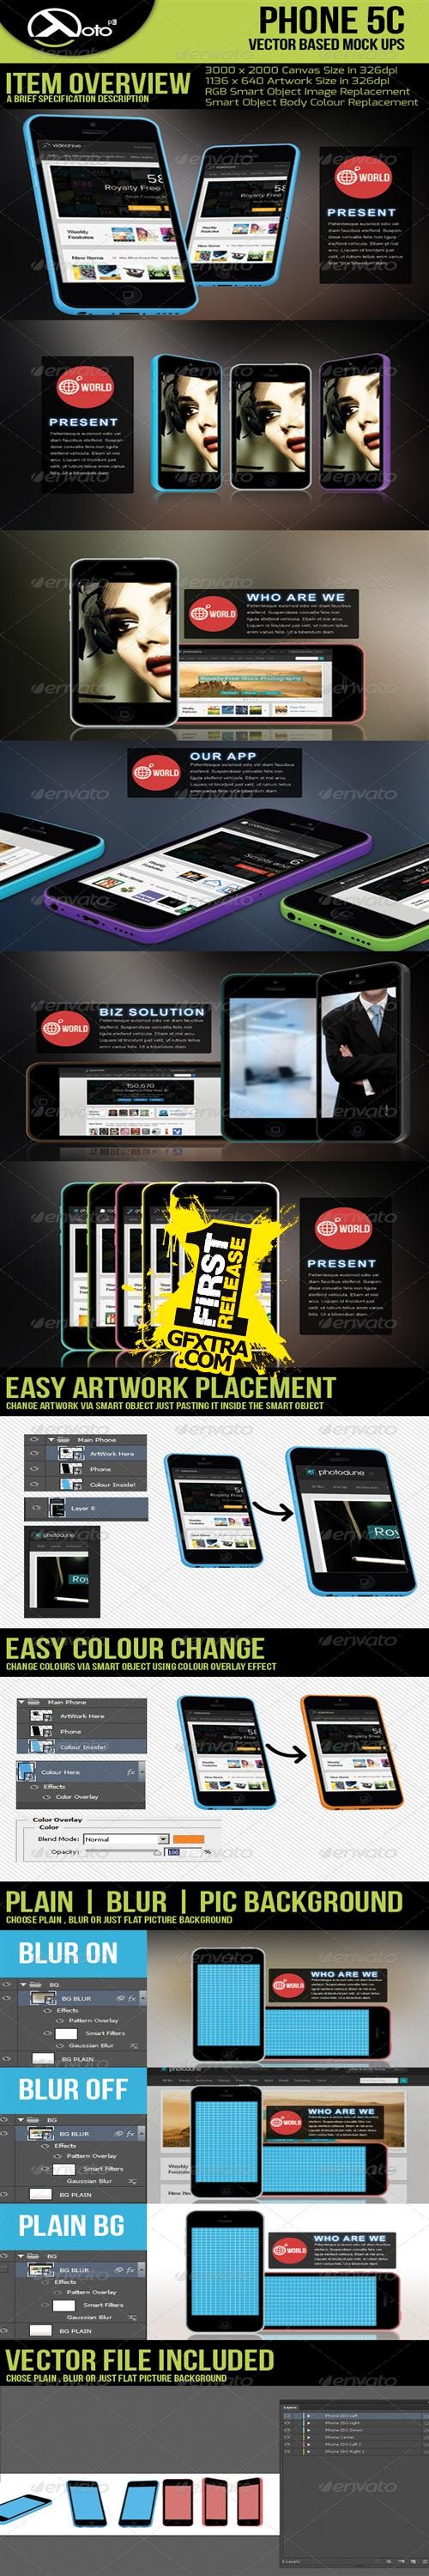 GraphicRiver - Phone 5c Vector Based Mock-up